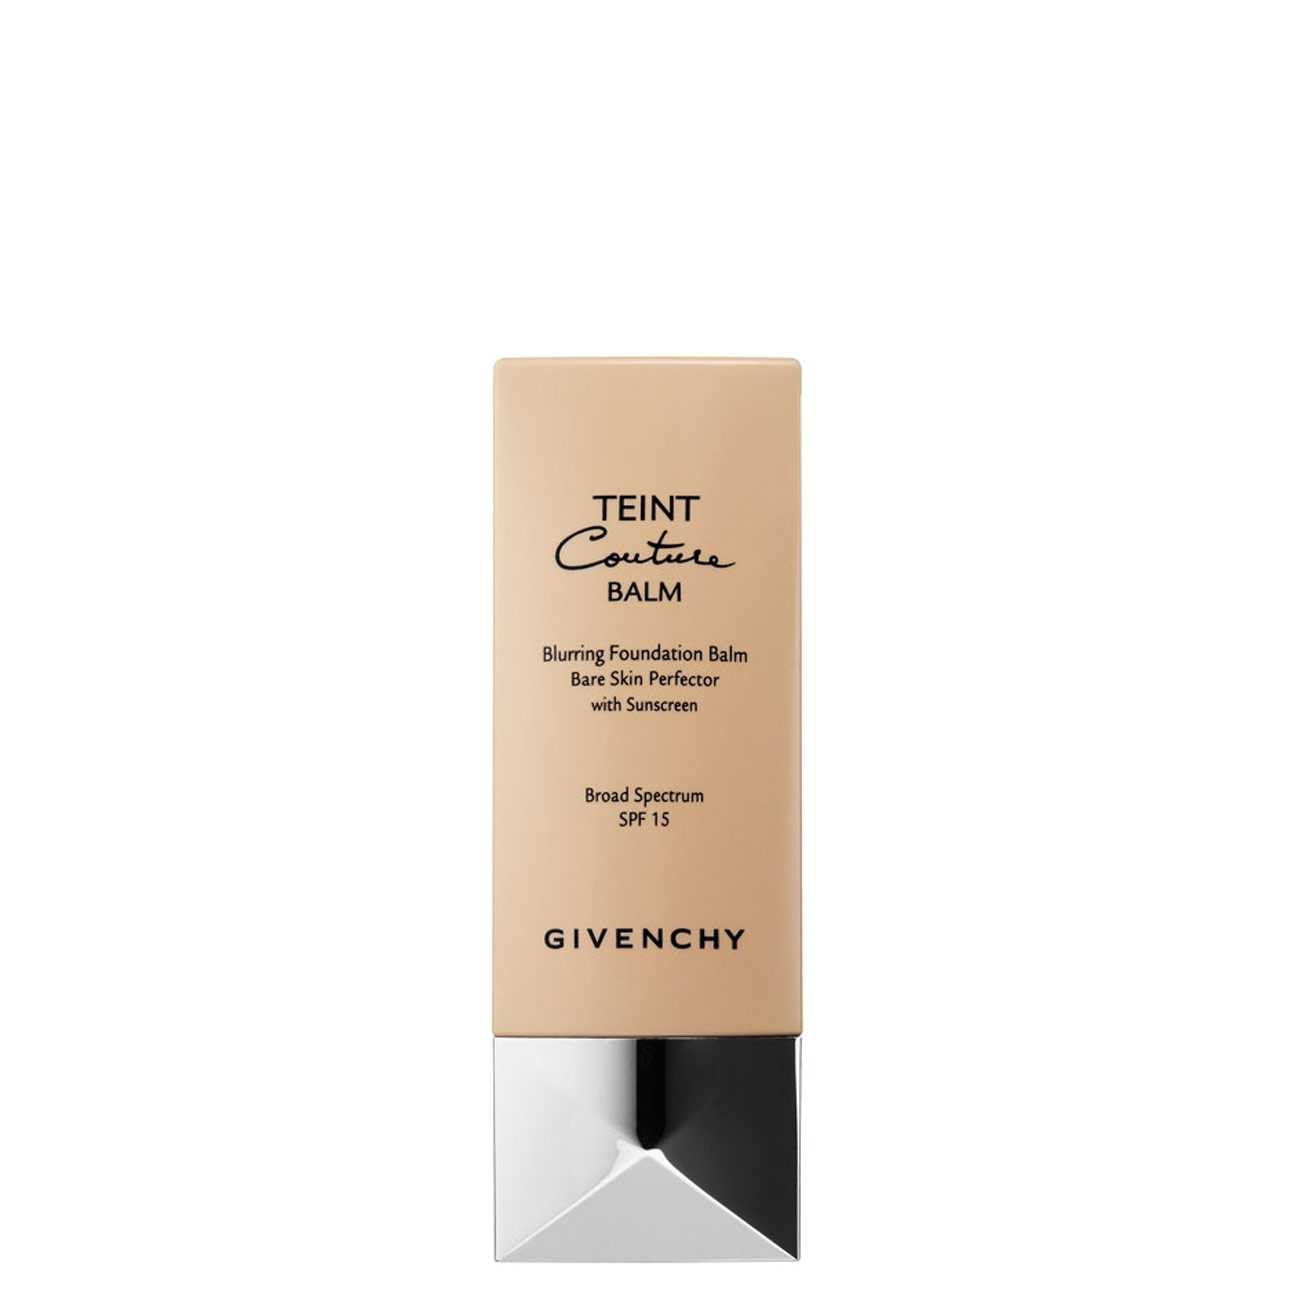 TEINT COUTURE BALM 30 ML Nude Sand N3